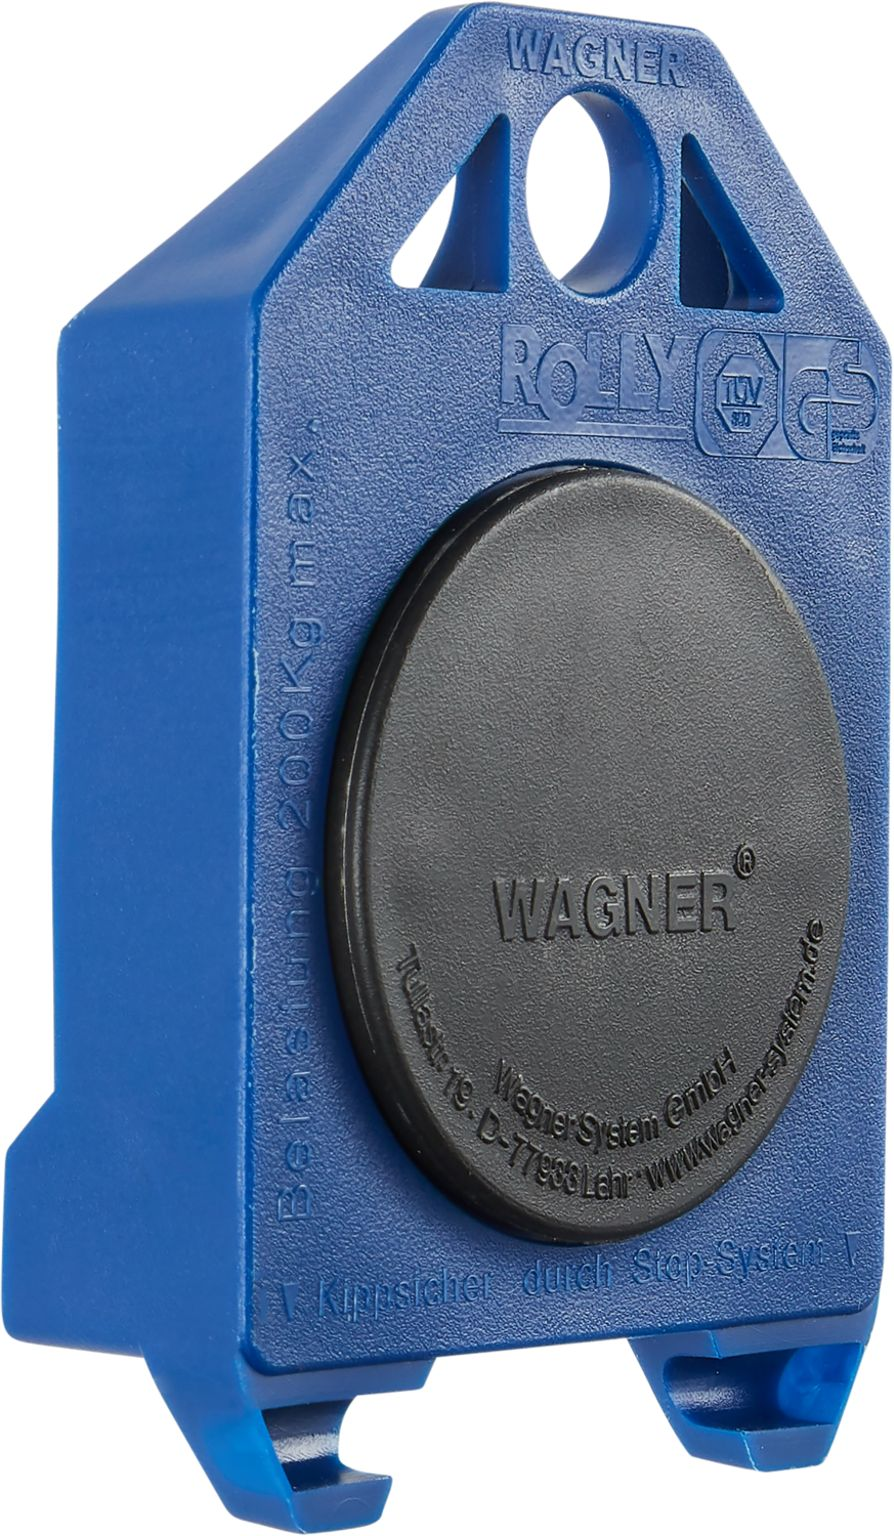 WAGNER Transporthilfe Rolly